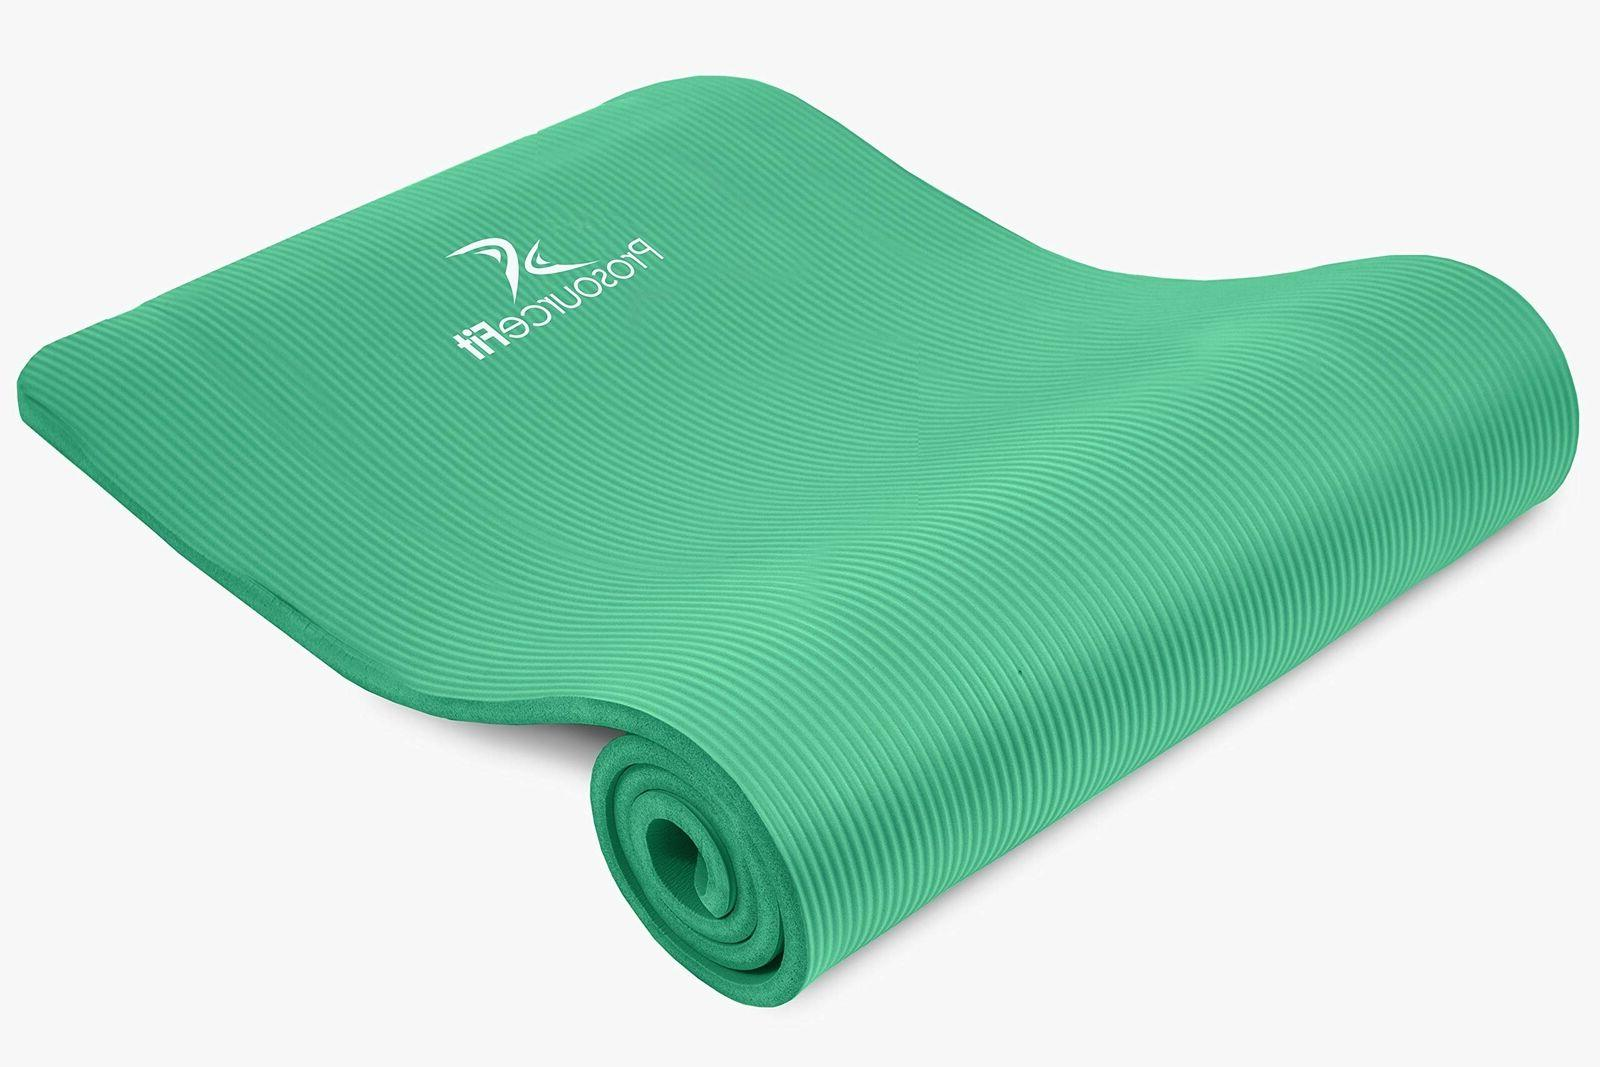 Extra Thick Pilates Non Slip Foam